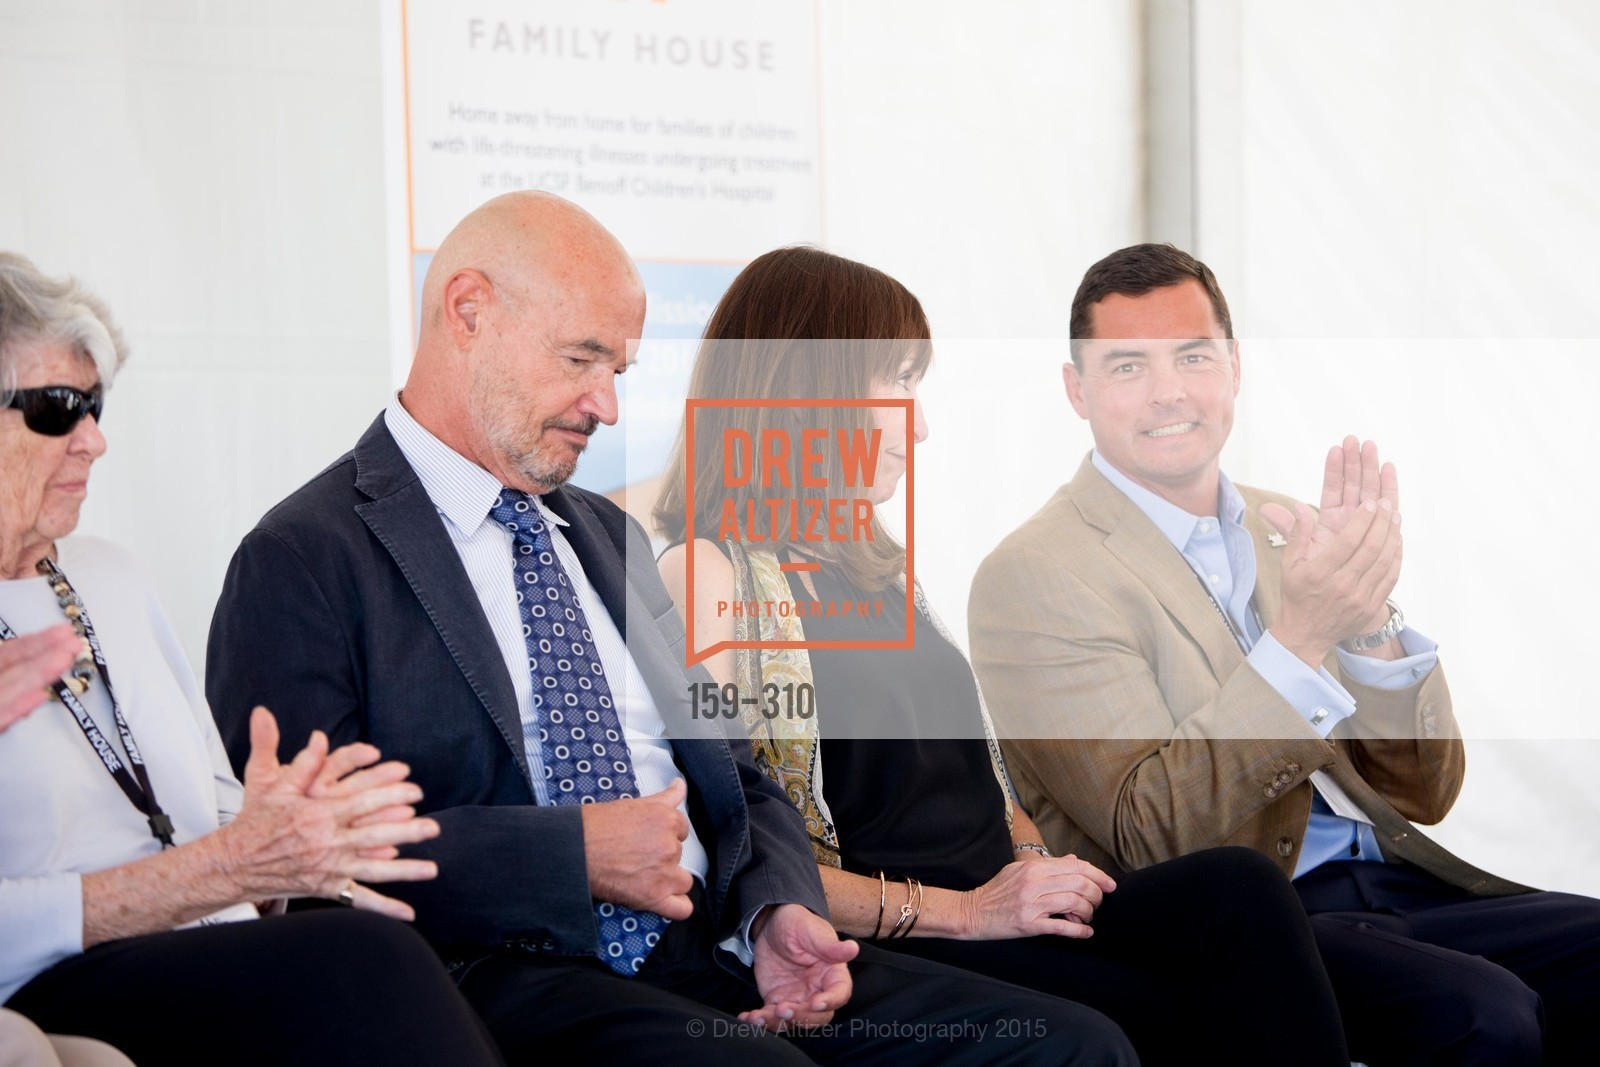 Debbie Ablin, Stephen Grand, Nancy Grand, Scott Miller, Nancy and Stephen Grand Family House Topping Off Ceremony, Family House. 540 Mission Bay Blvd, September 24th, 2015,Drew Altizer, Drew Altizer Photography, full-service agency, private events, San Francisco photographer, photographer california